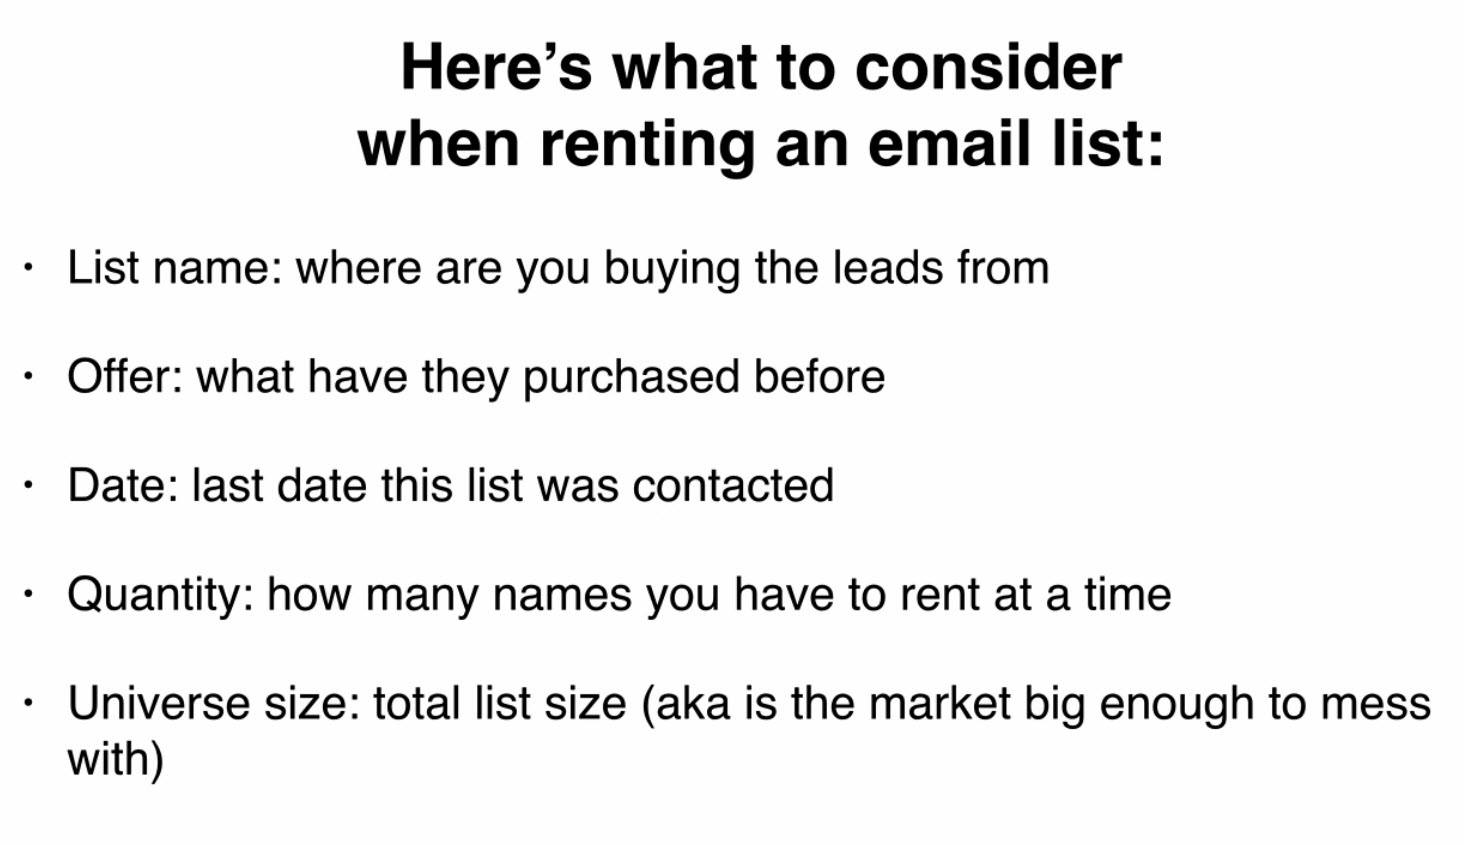 What to consider when renting an email list from Solo Ad vendor